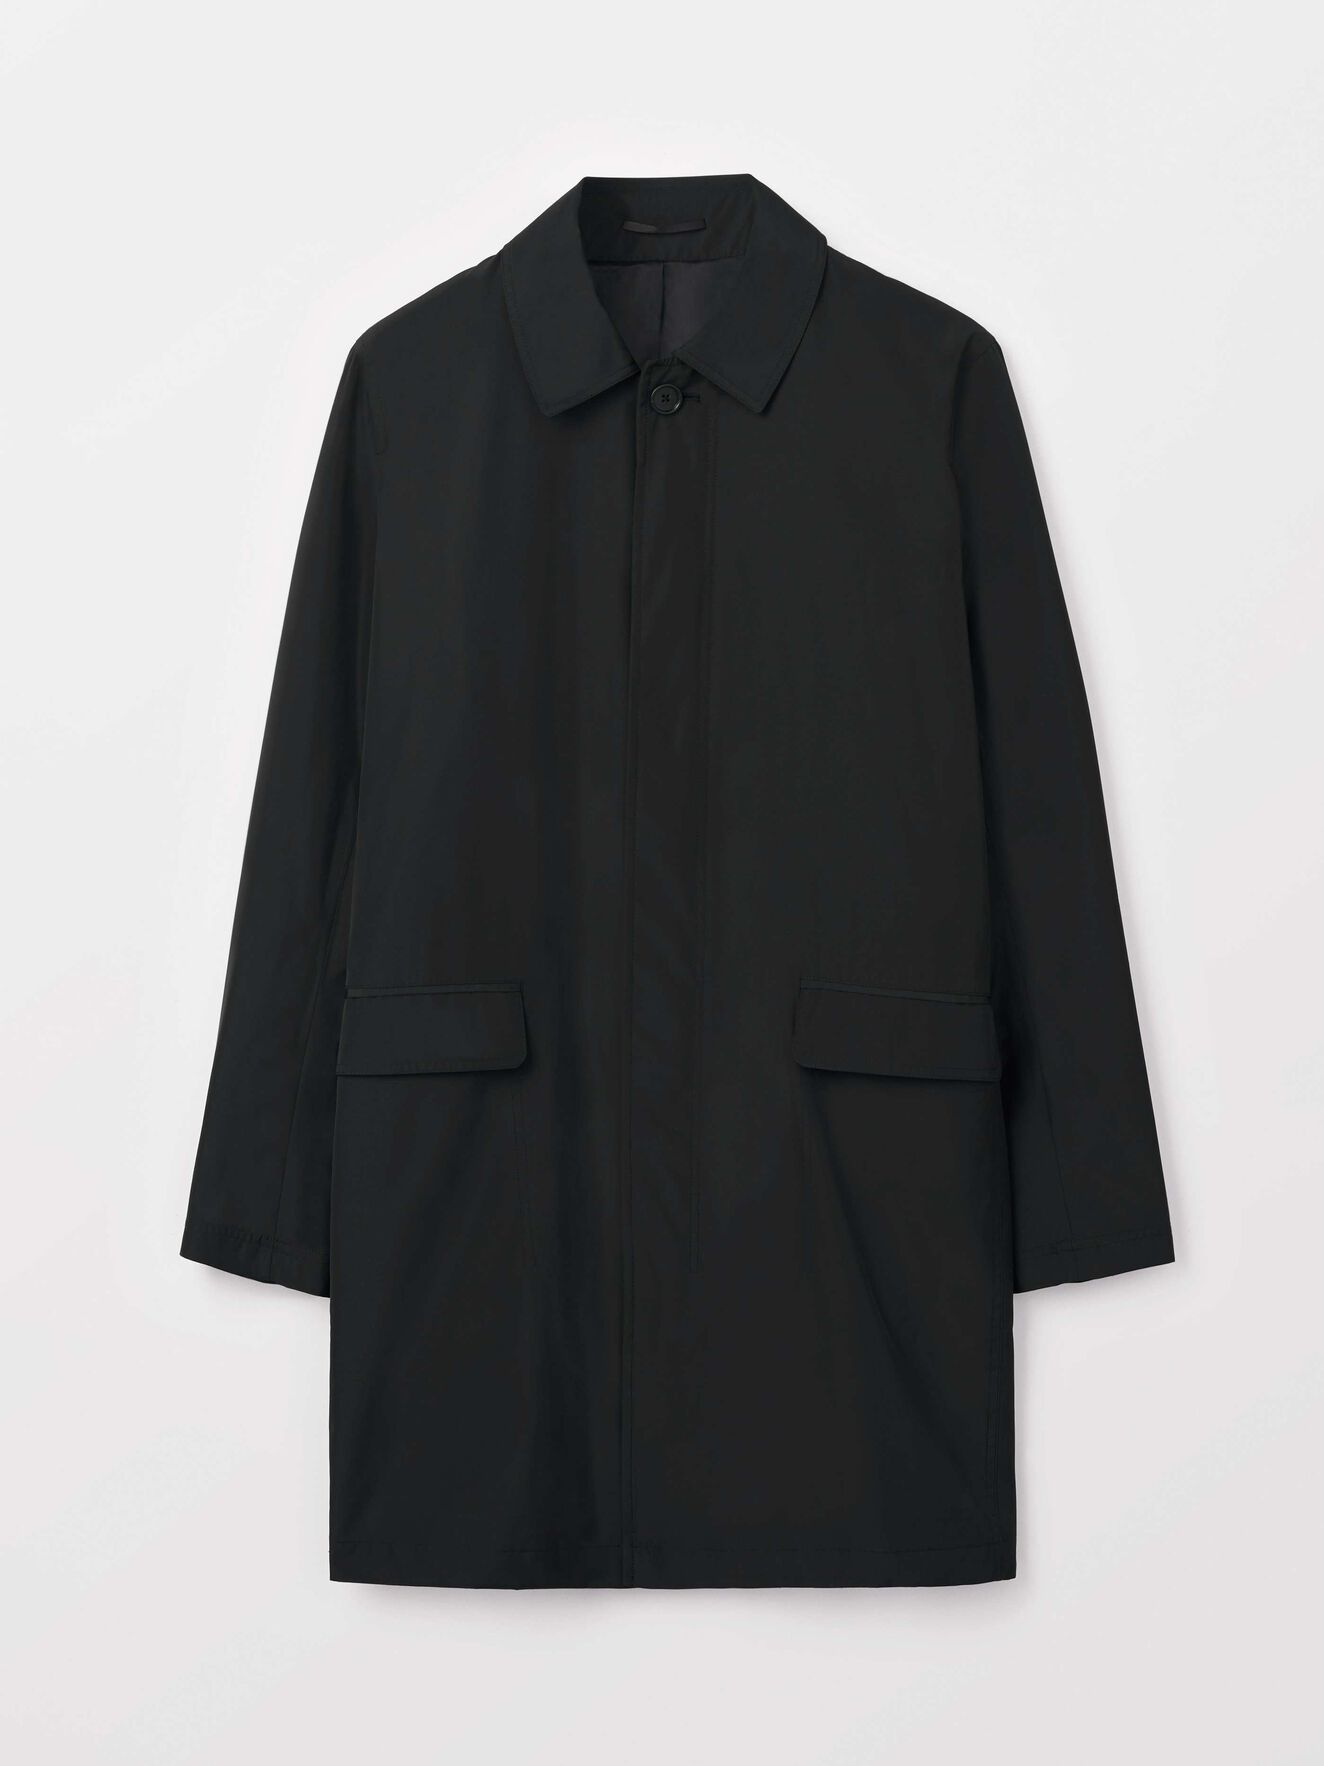 Calton Coat in Black from Tiger of Sweden